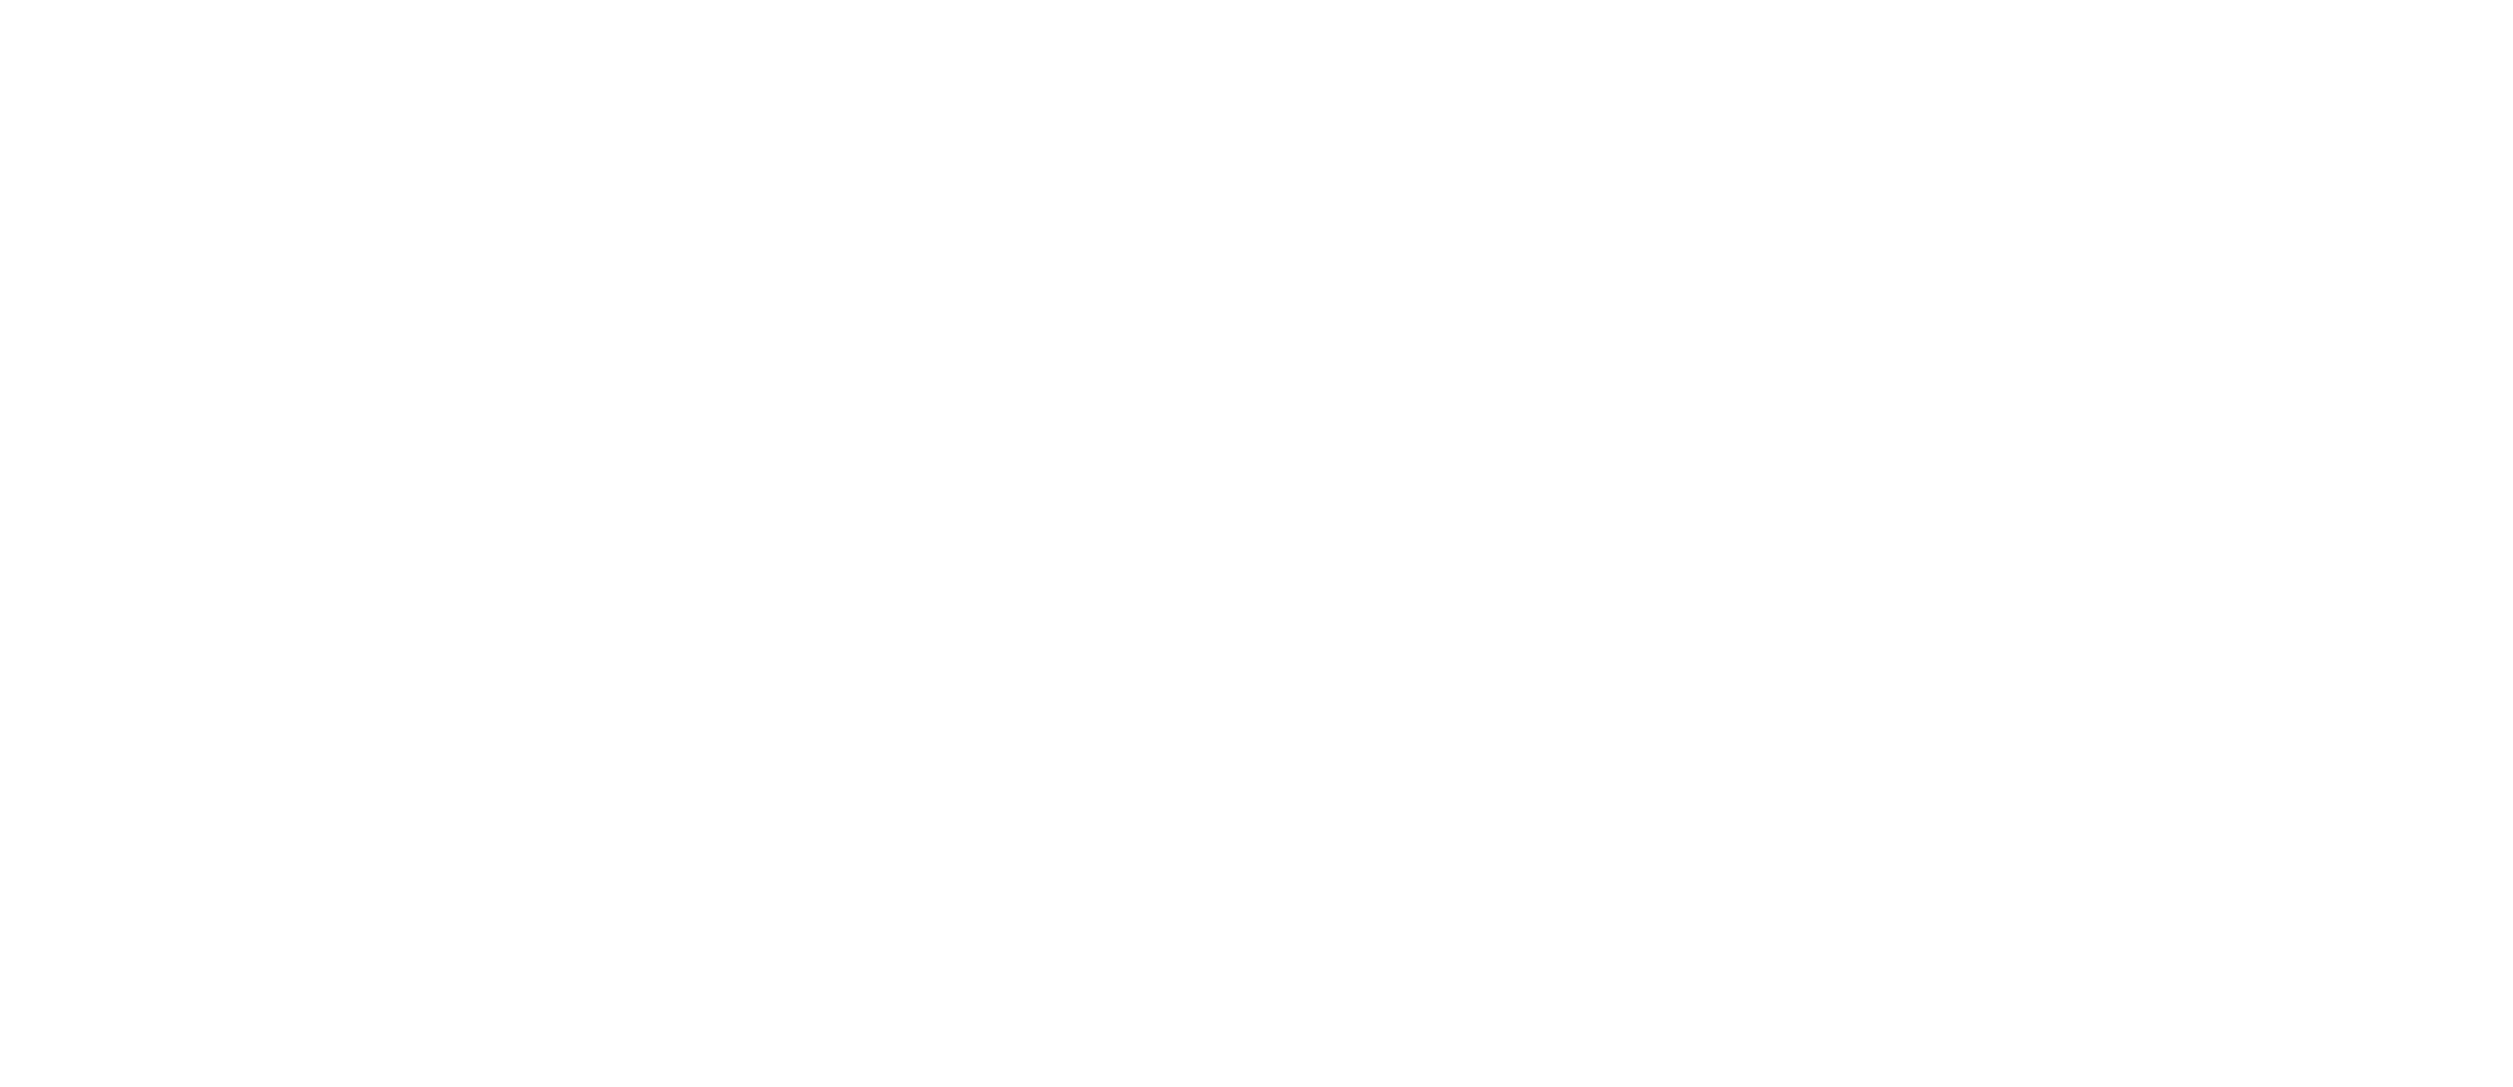 Dada Life Champagne,         Brut Reserve Logo.  No rules, but the rules of the Dada